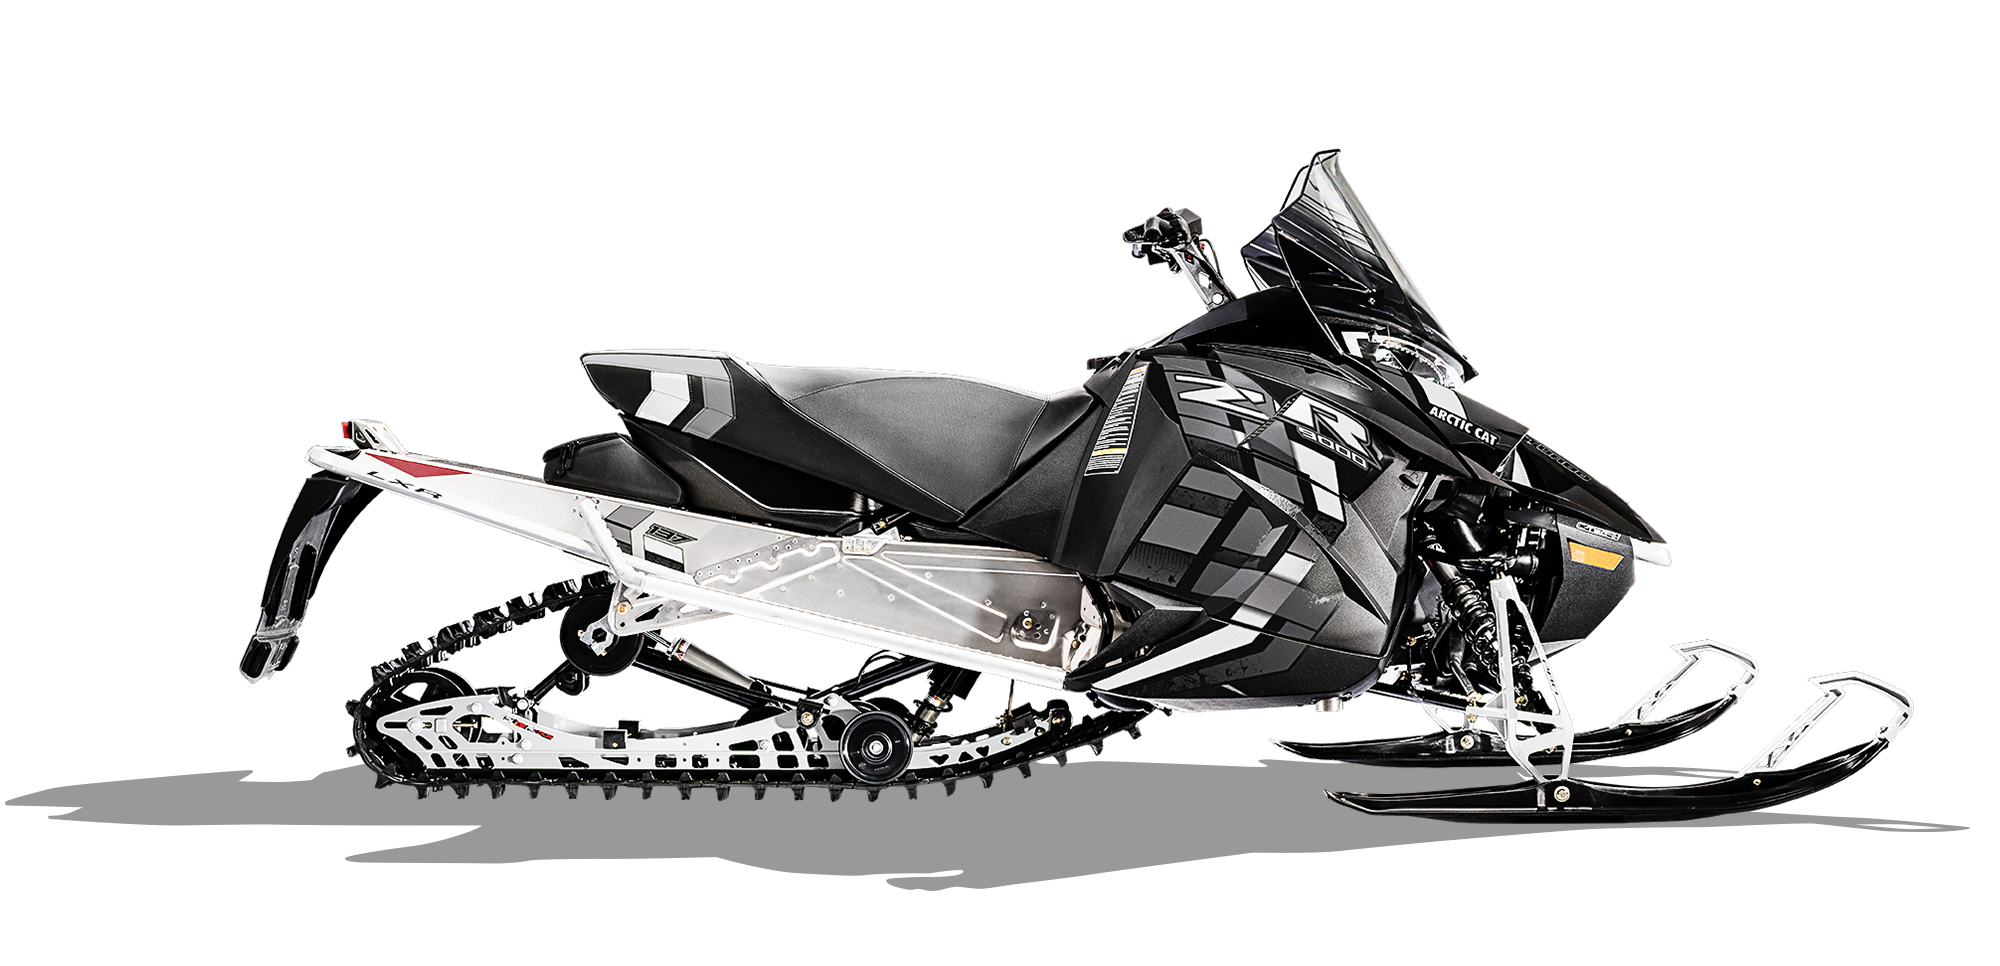 vector royalty free download Zr lxr arctic cat. Snowmobile drawing.